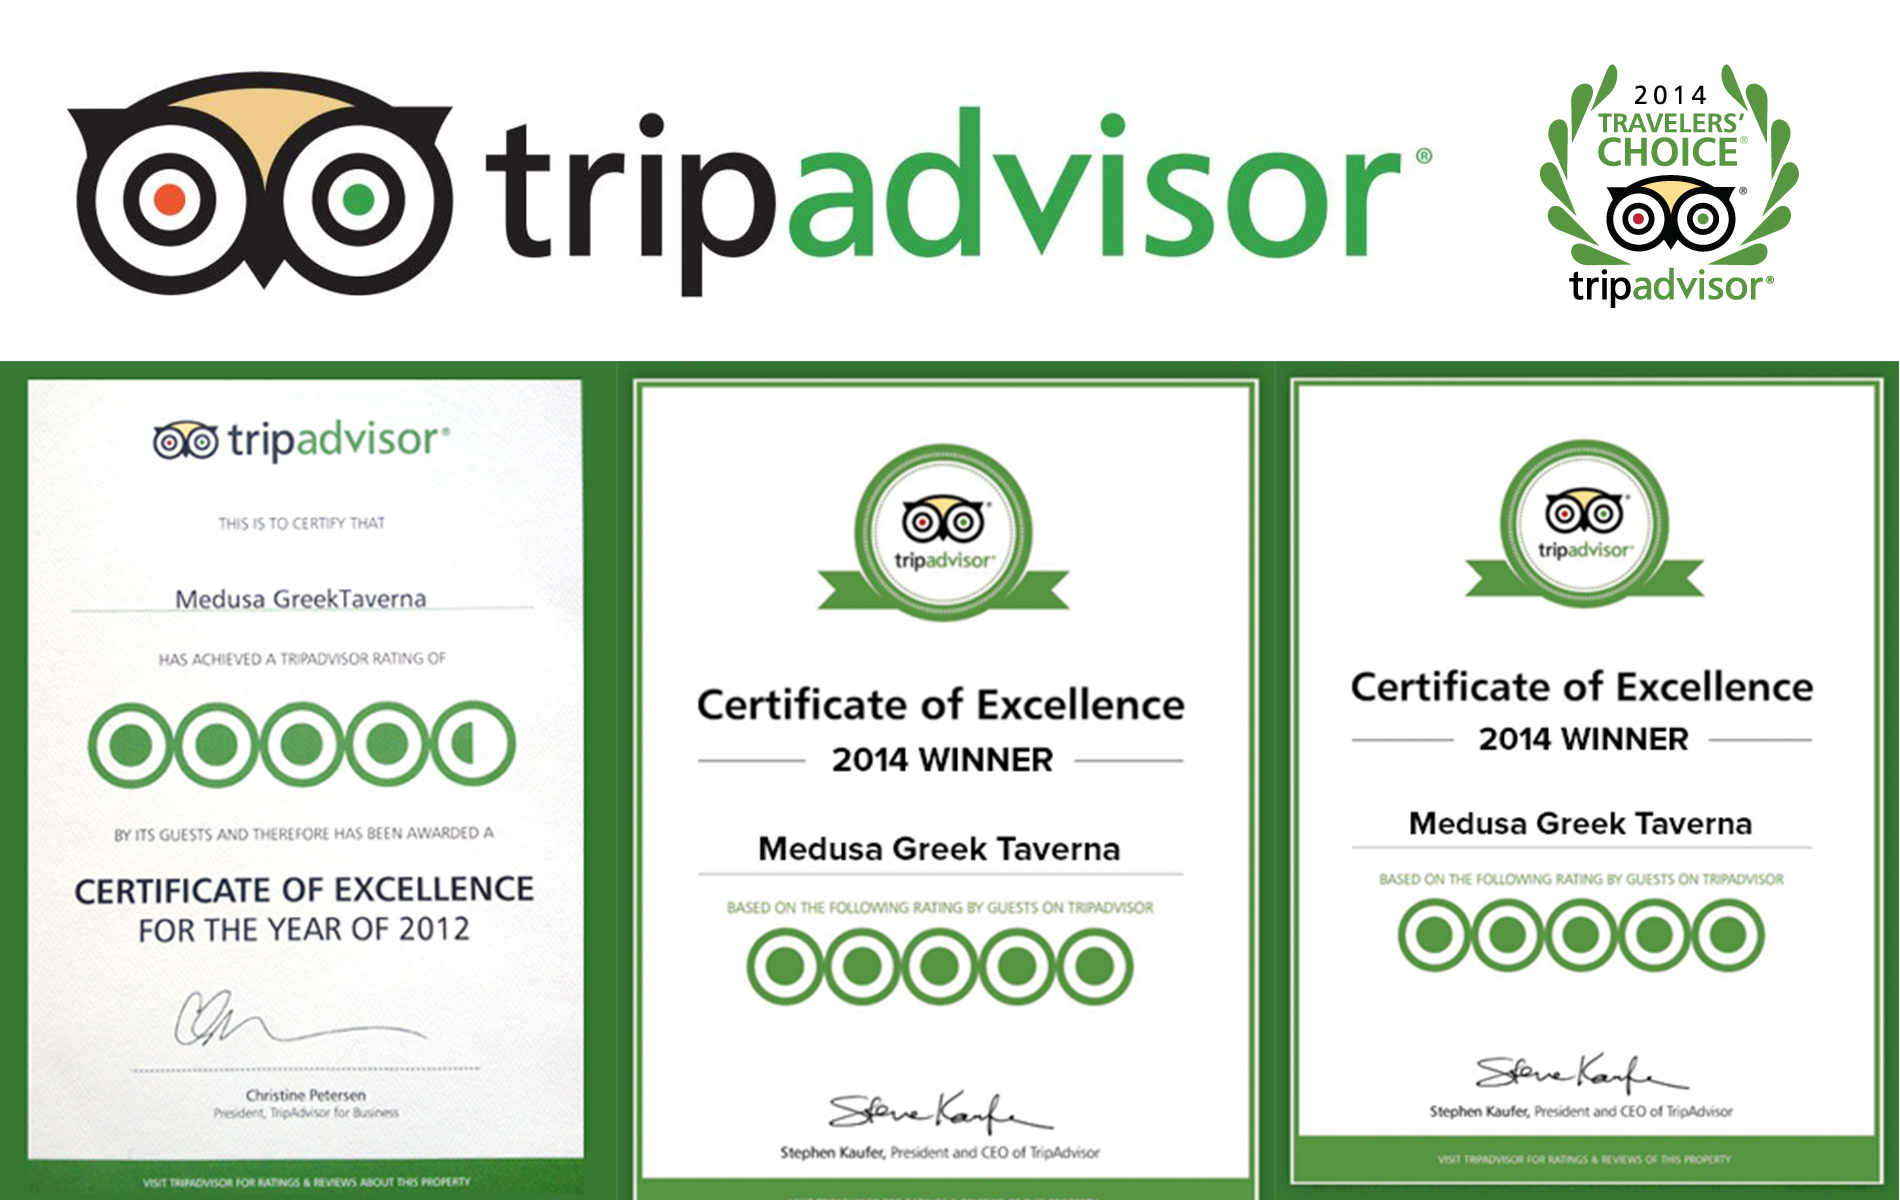 medusa tripadvisor - In The Press